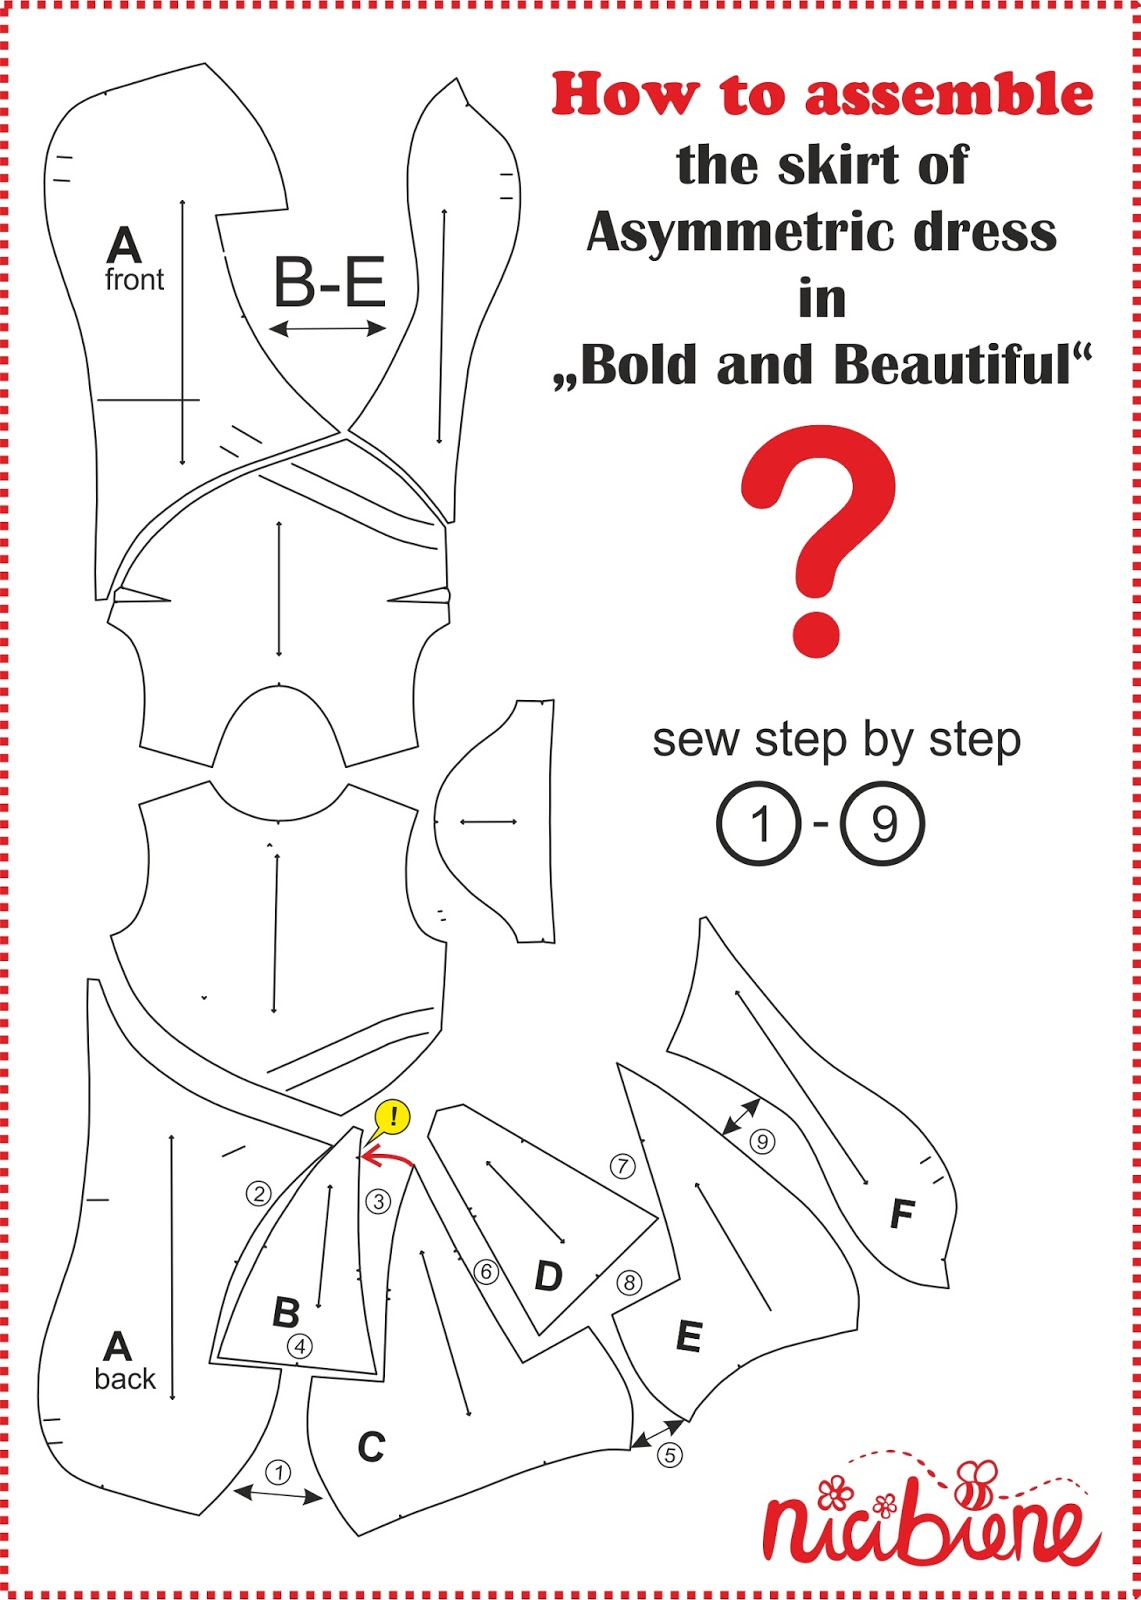 How to assemble the skirt, Bold and Beautiful, asymmetric dress